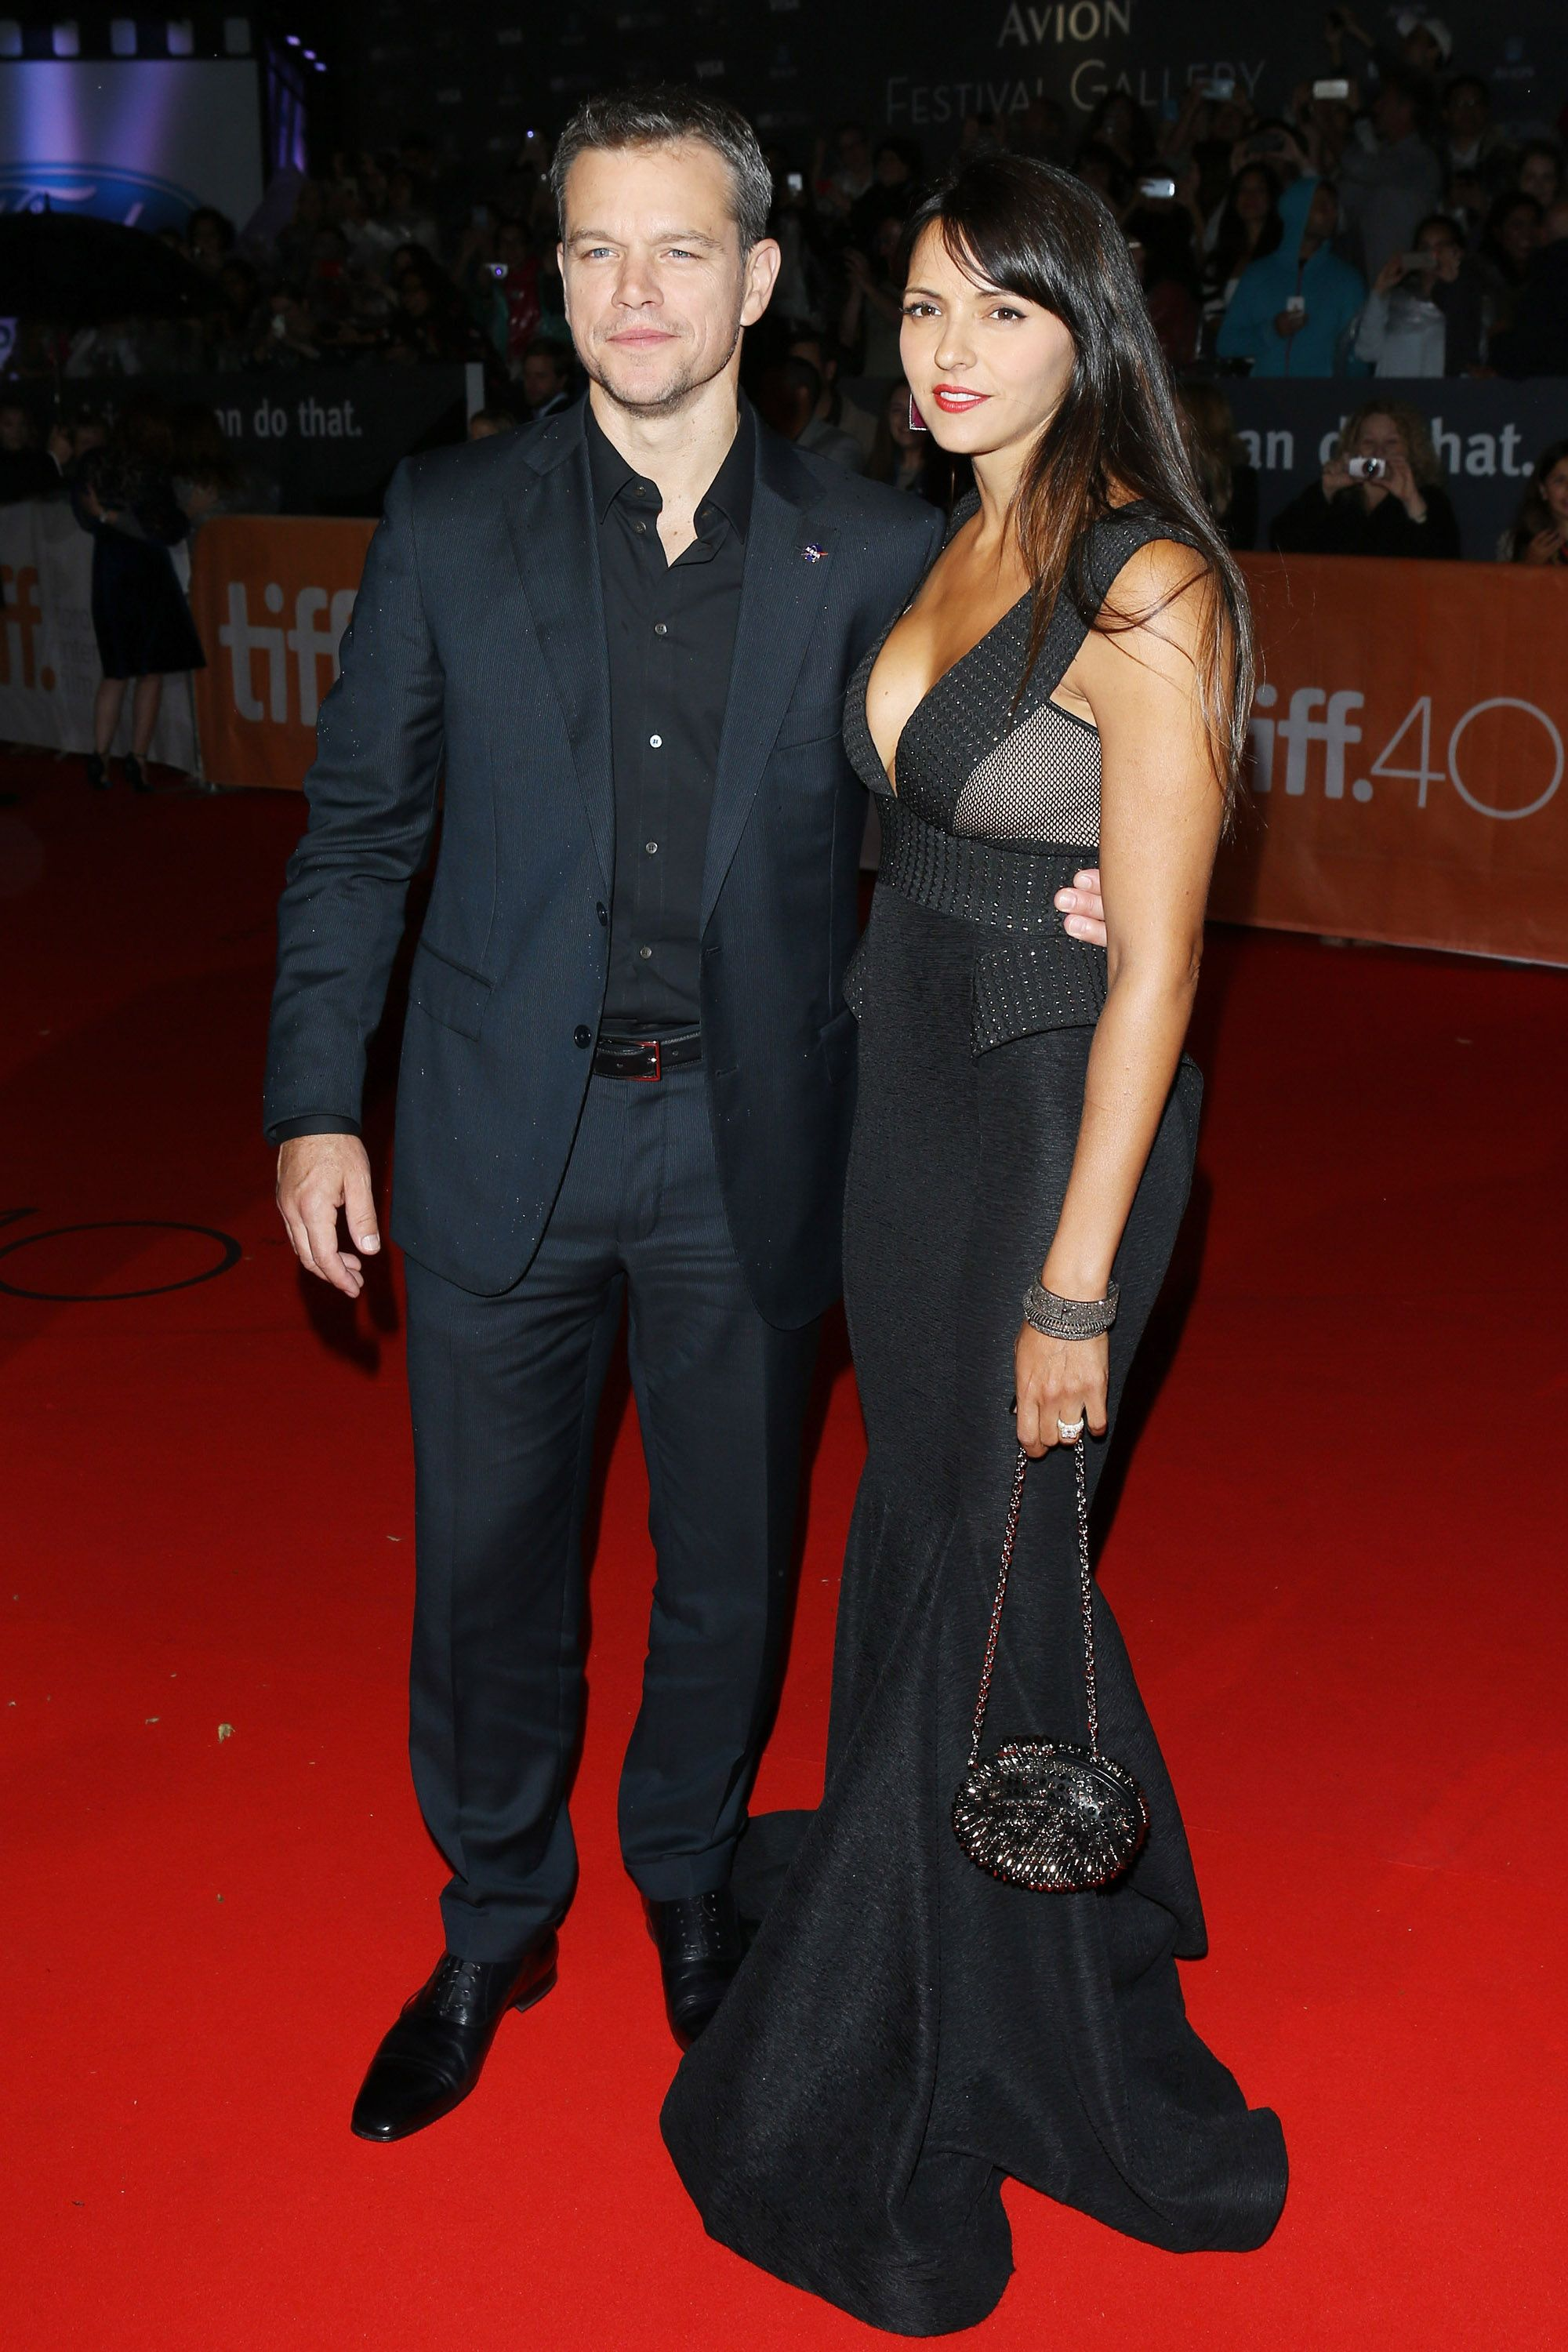 <p>Damon met Luciana Barroso, a bartender, while on location filming a movie in Miami—the couple tied the knot in 2005 and have three daughters.</p>